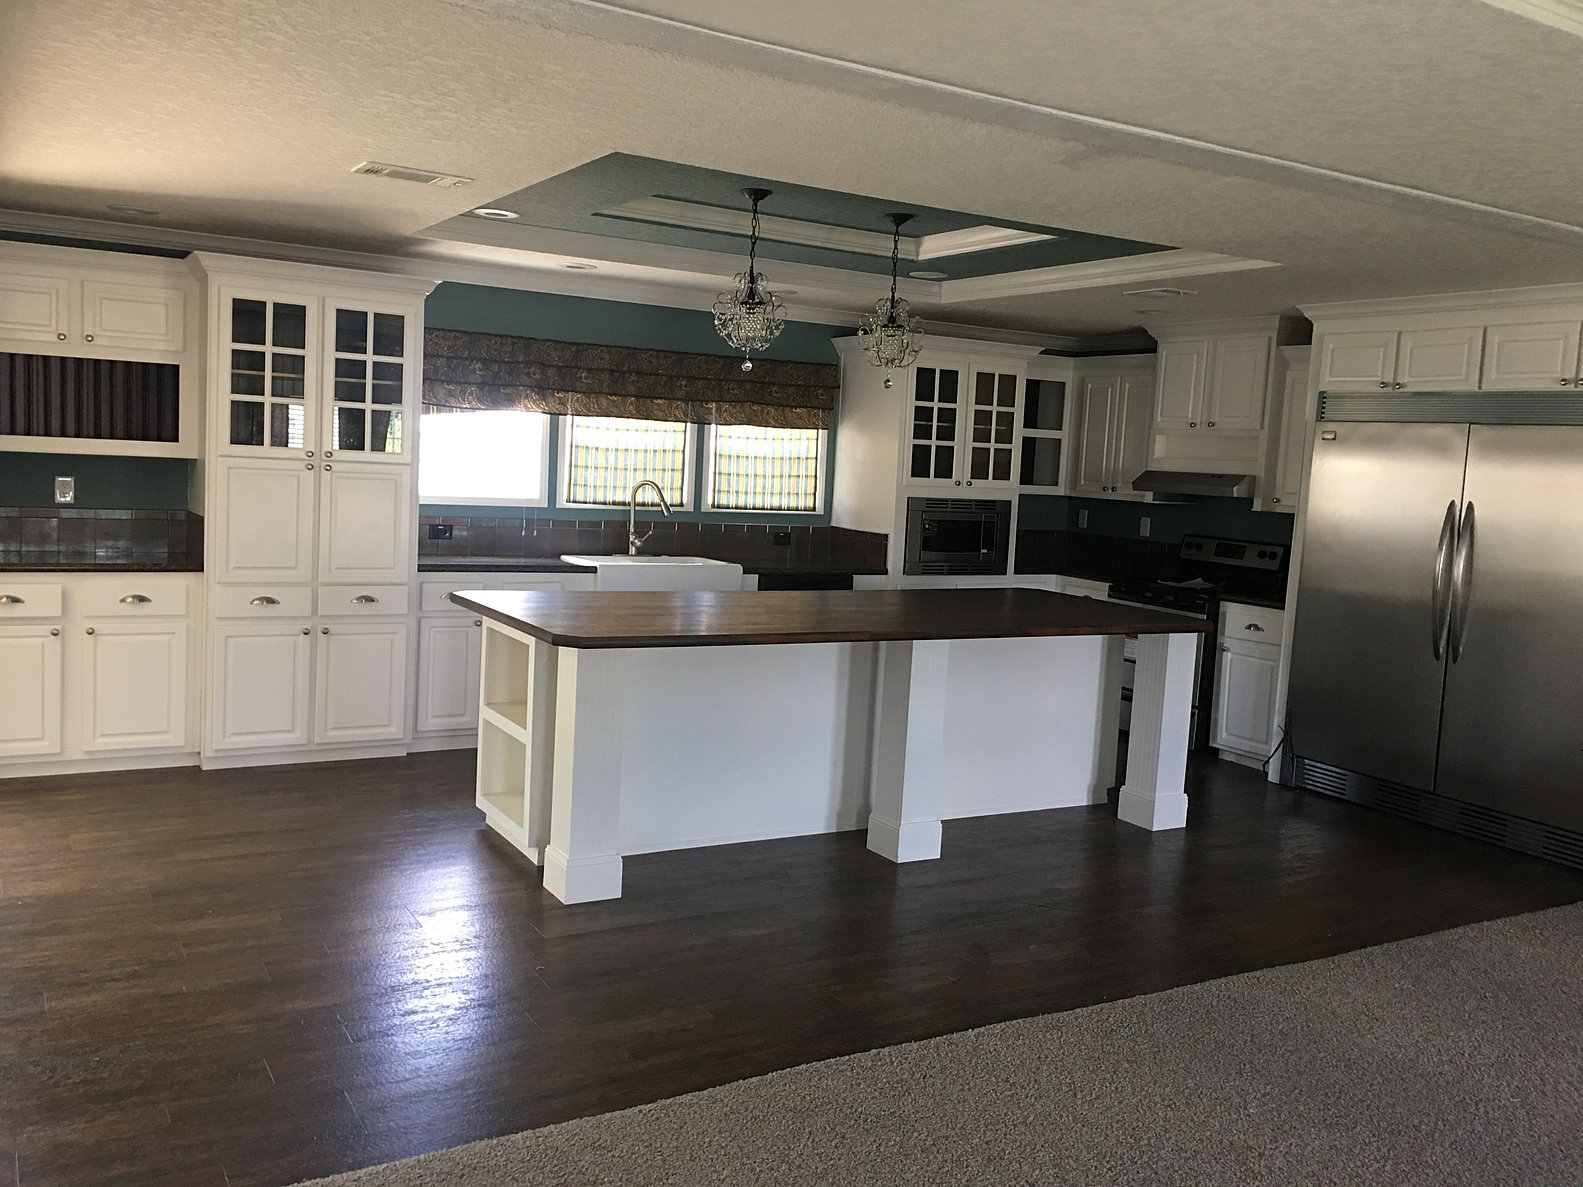 awhomes gallery a w mobile homes t 386 328 4681 f 386 328 0707 aandwhomes comcast net specializing in modular and manufactured homes